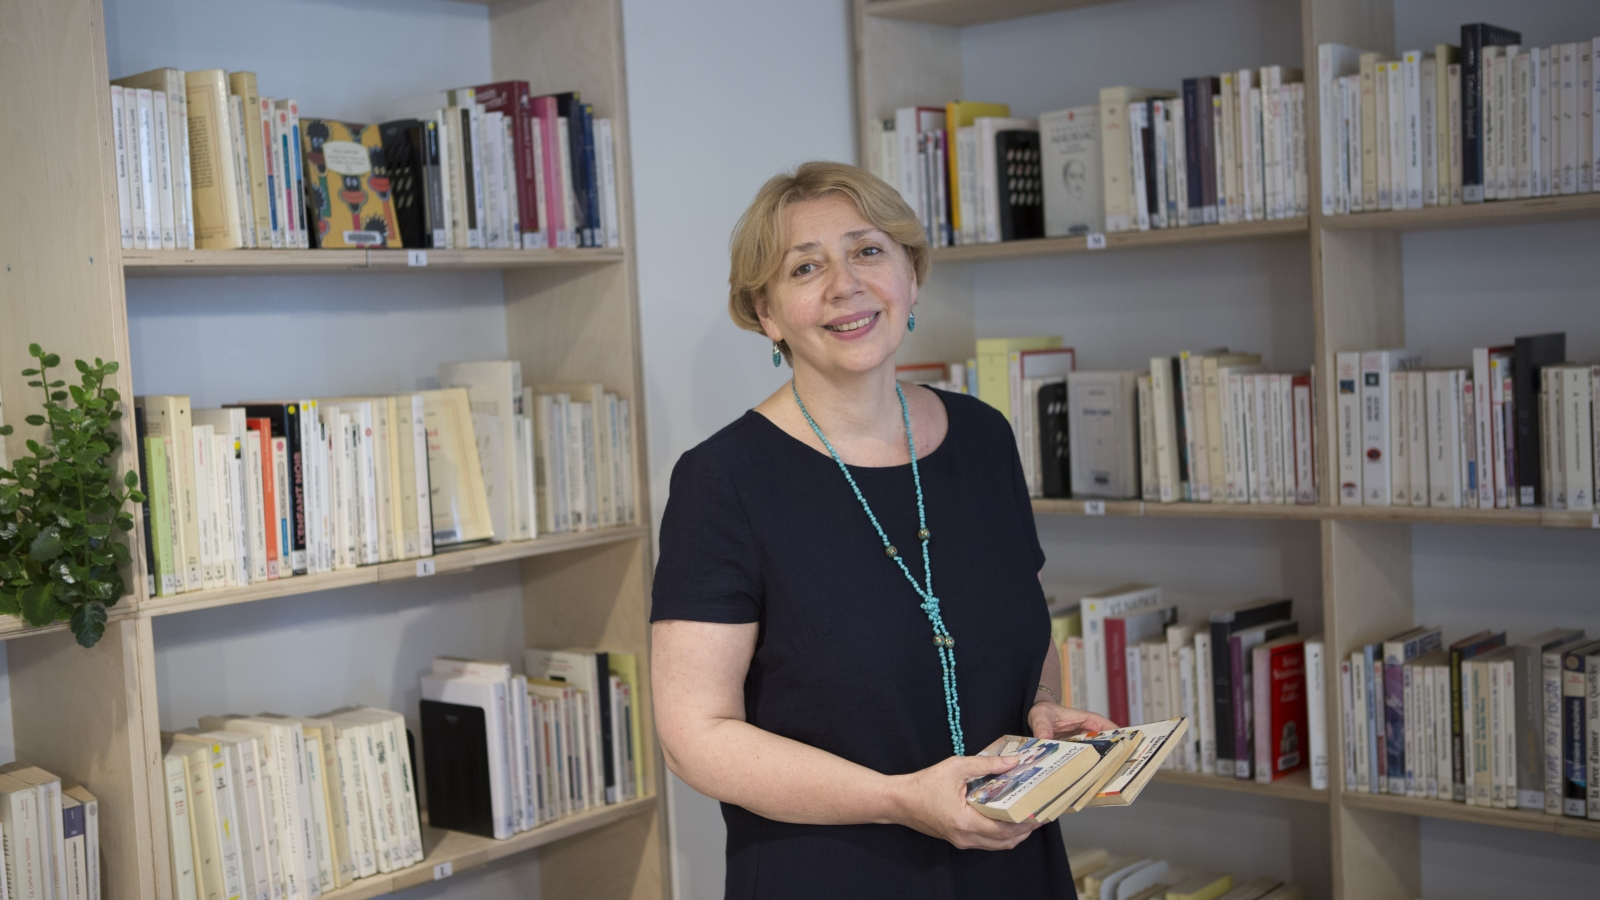 Director of Agora publishing house Marina Balavadze at the library in Tbilisi